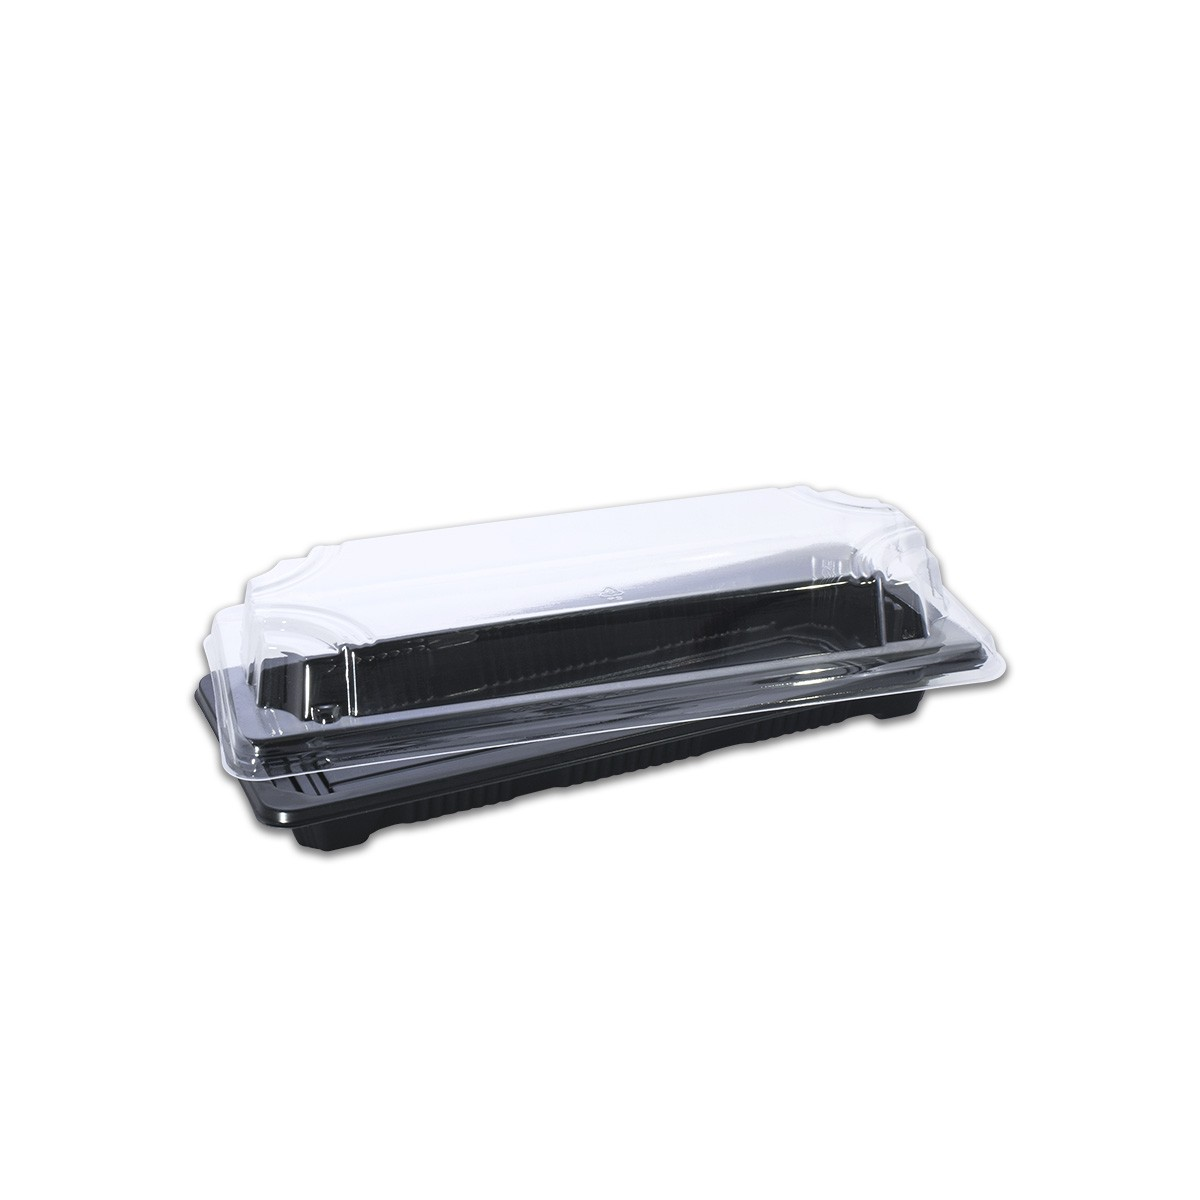 Tuttiblac Black Rectangular Container 219x90x43mm +Lid | 500pcs